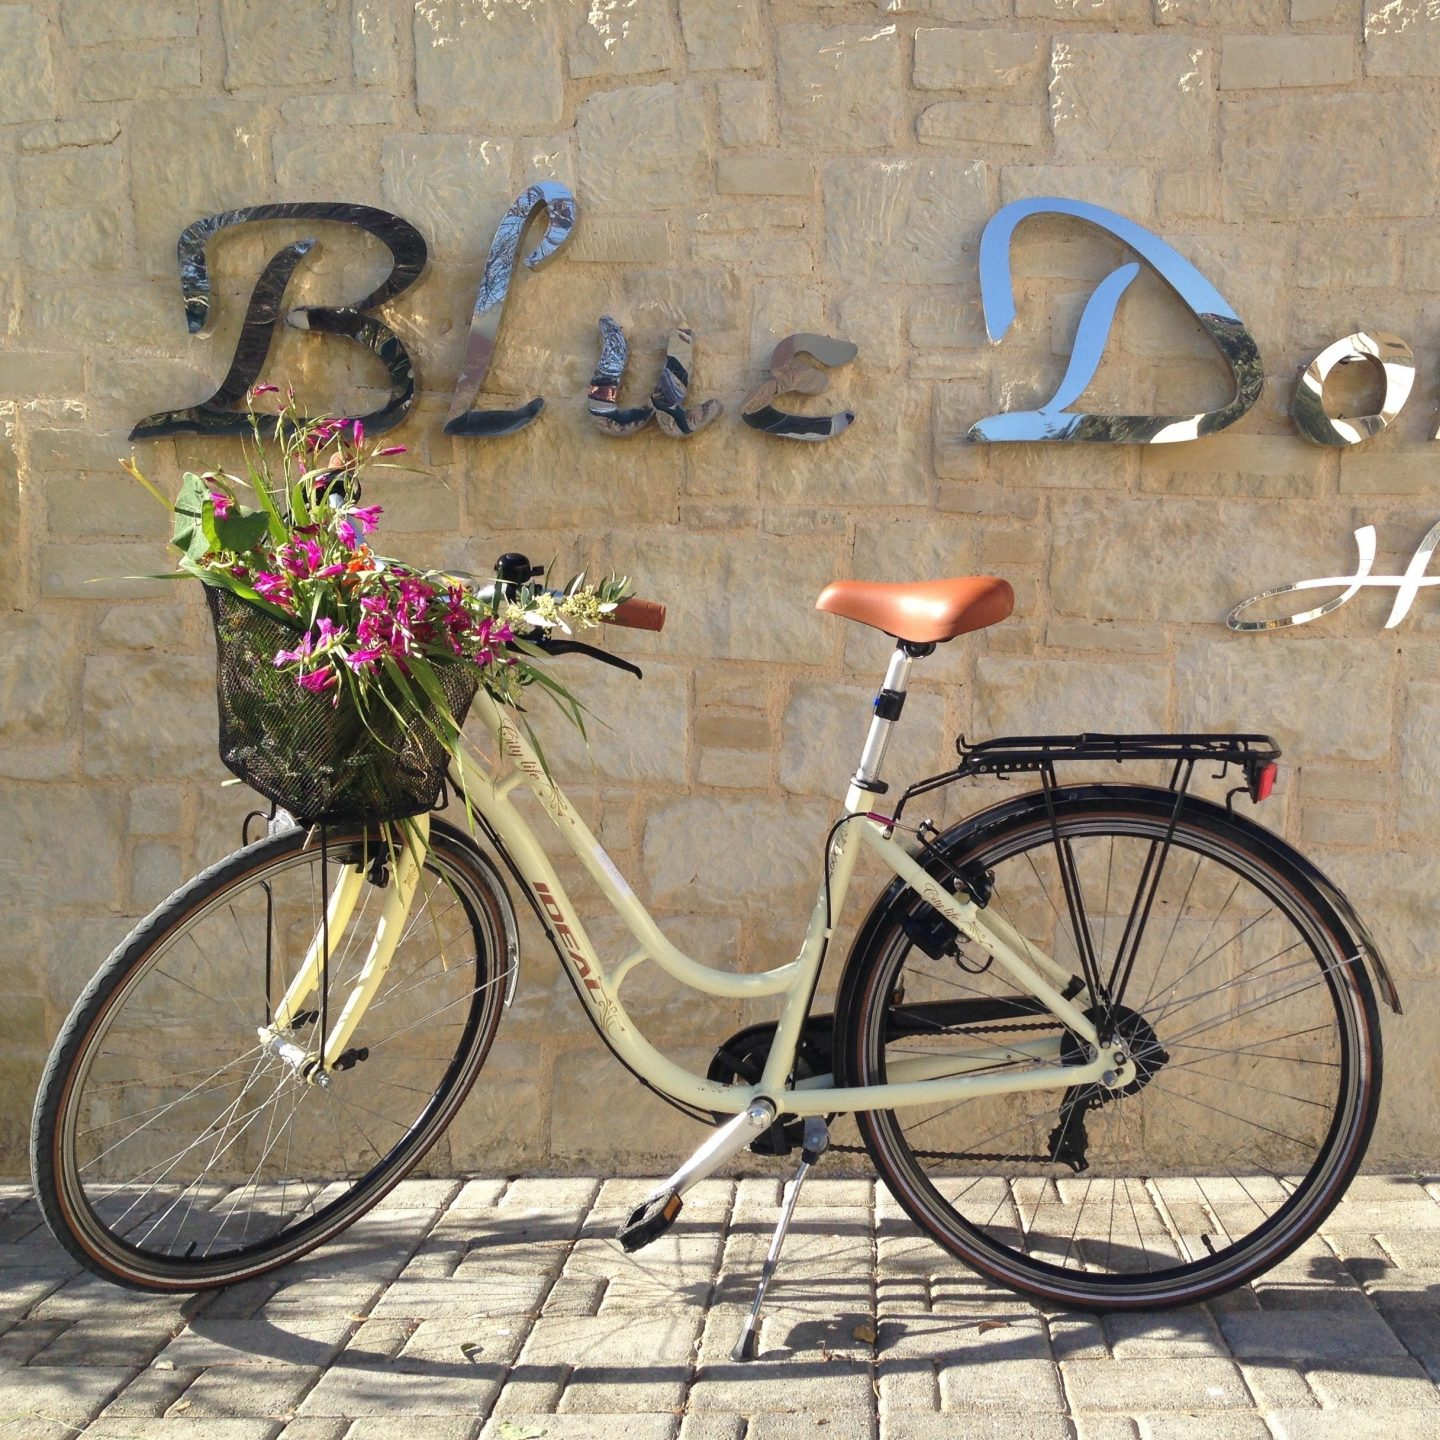 A bicycle with its basket filled with flowers in front of a stone wall in Blue Dome Hotel in Platanias.